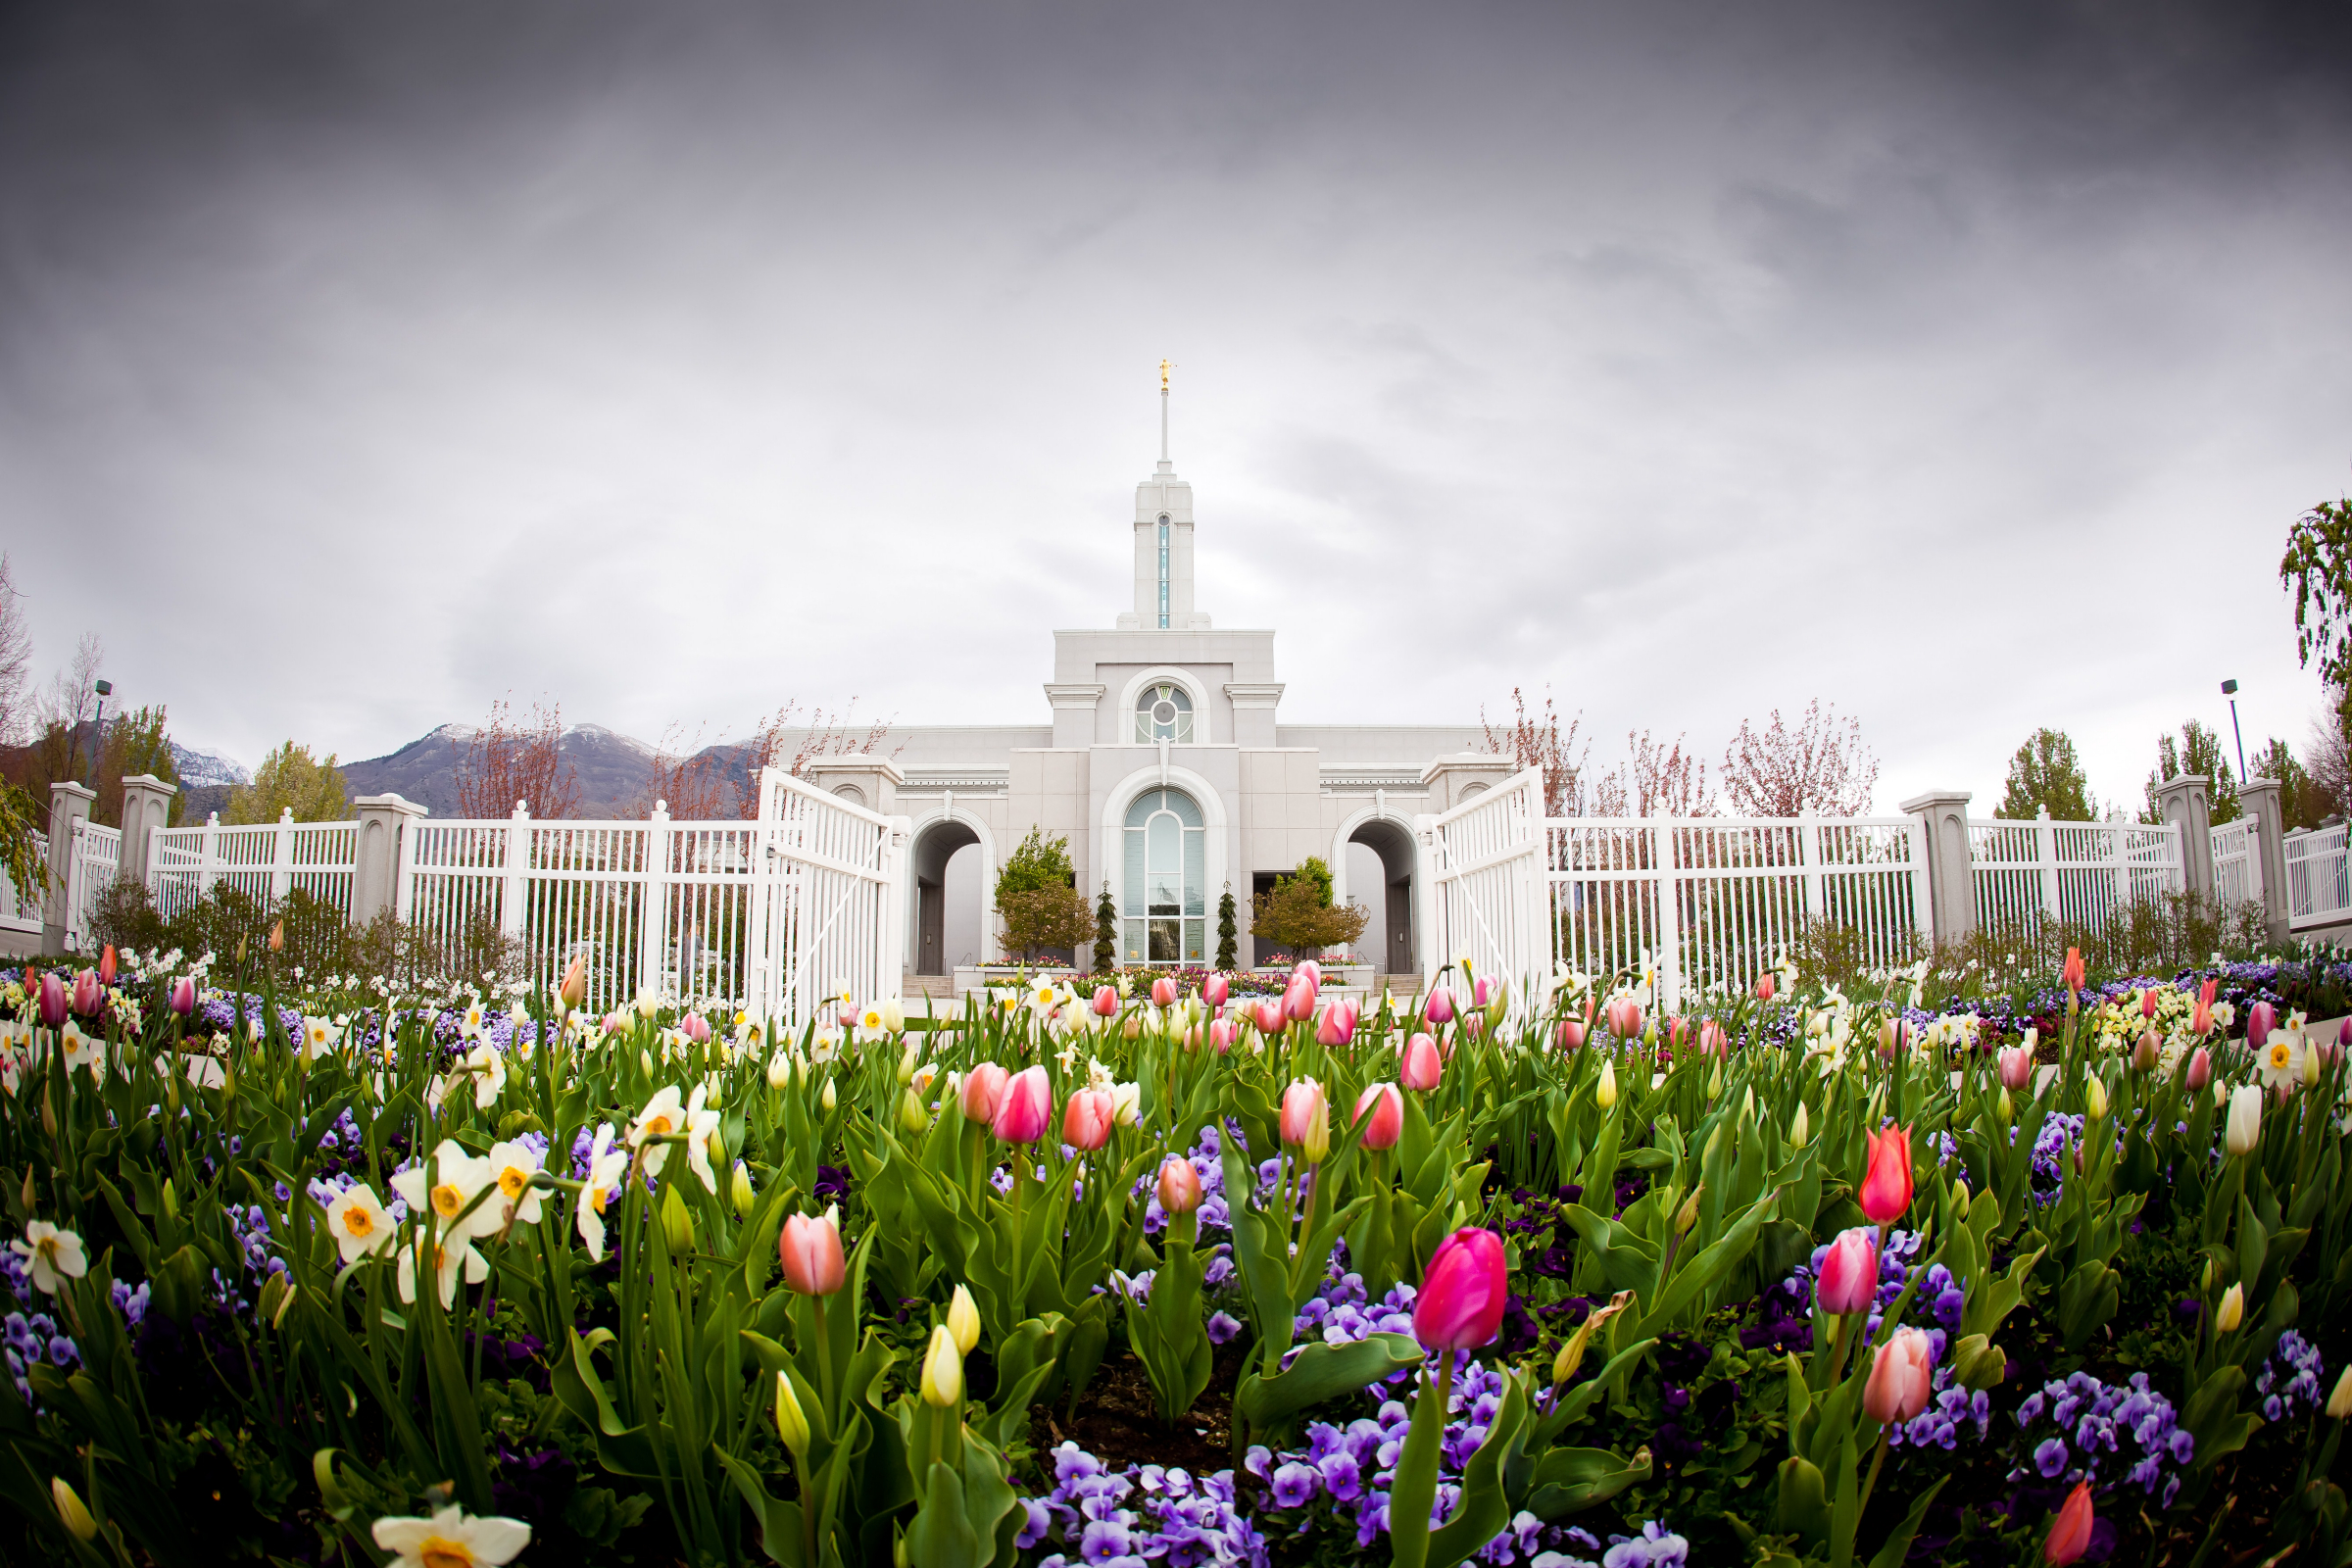 Mount timpanogos utah temple - Lds temple wallpaper ...